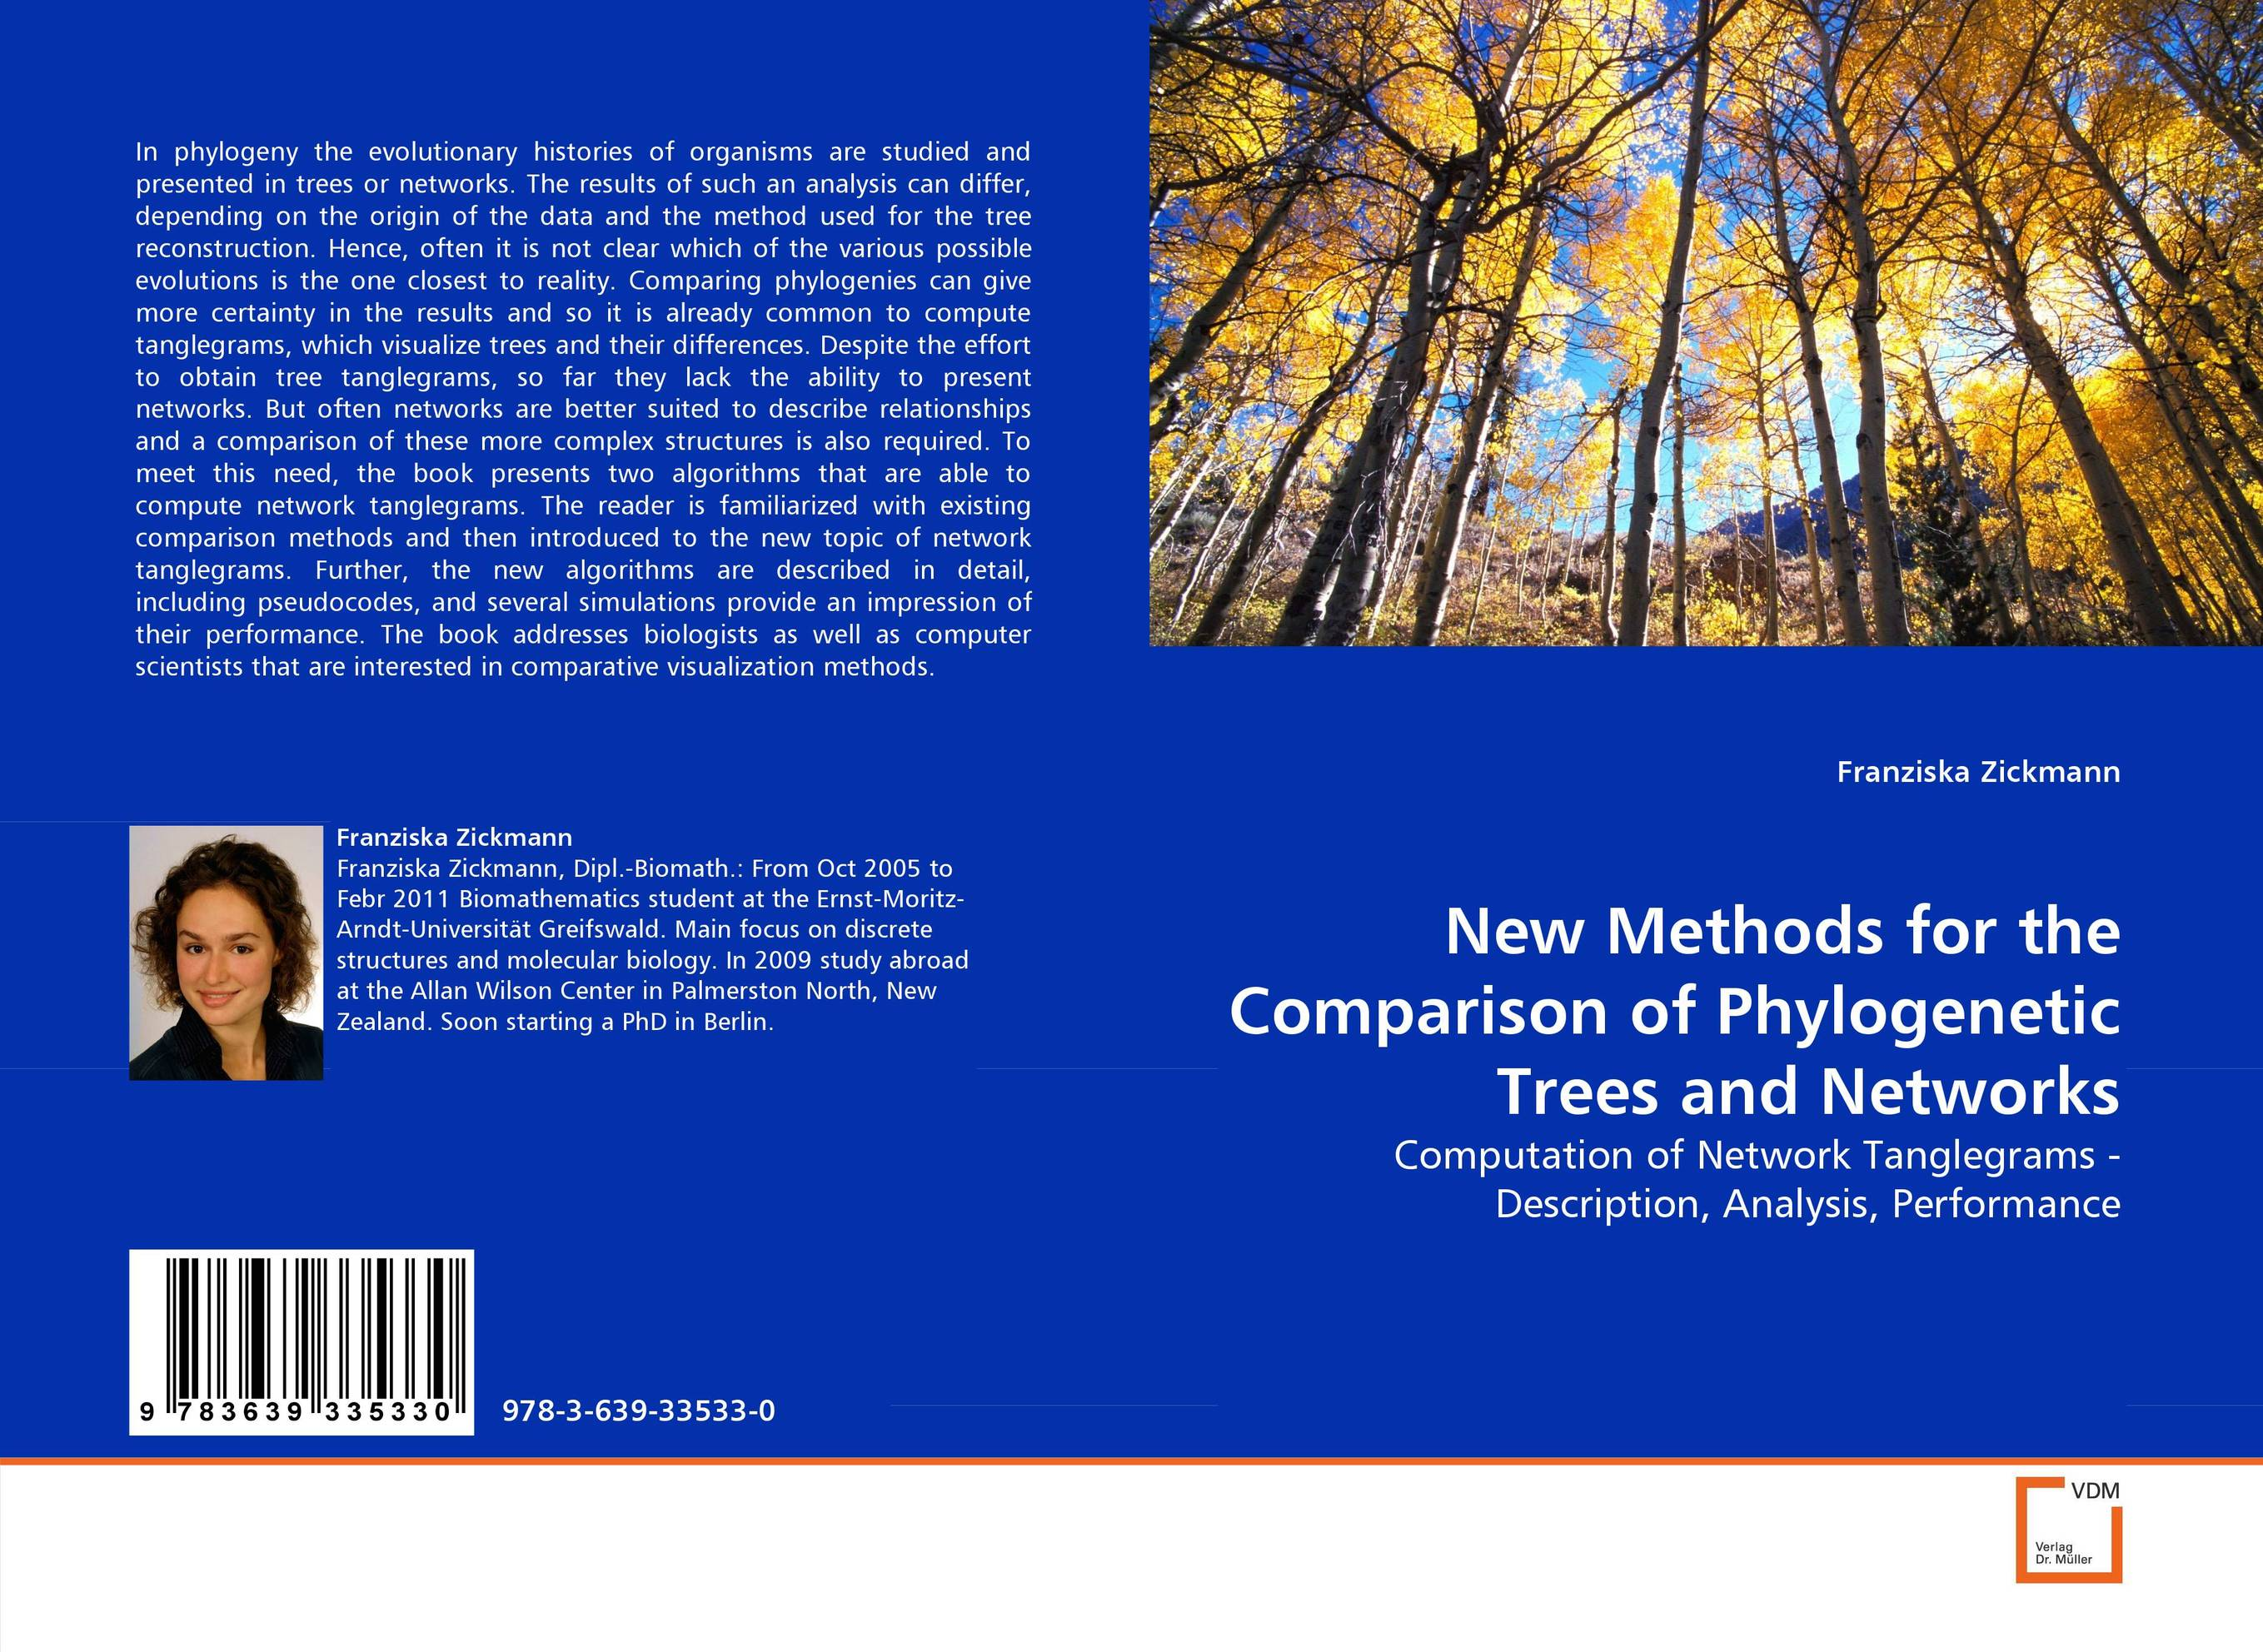 New Methods for the Comparison of Phylogenetic Trees and Networks the trees trees the garden of jane delawney lp